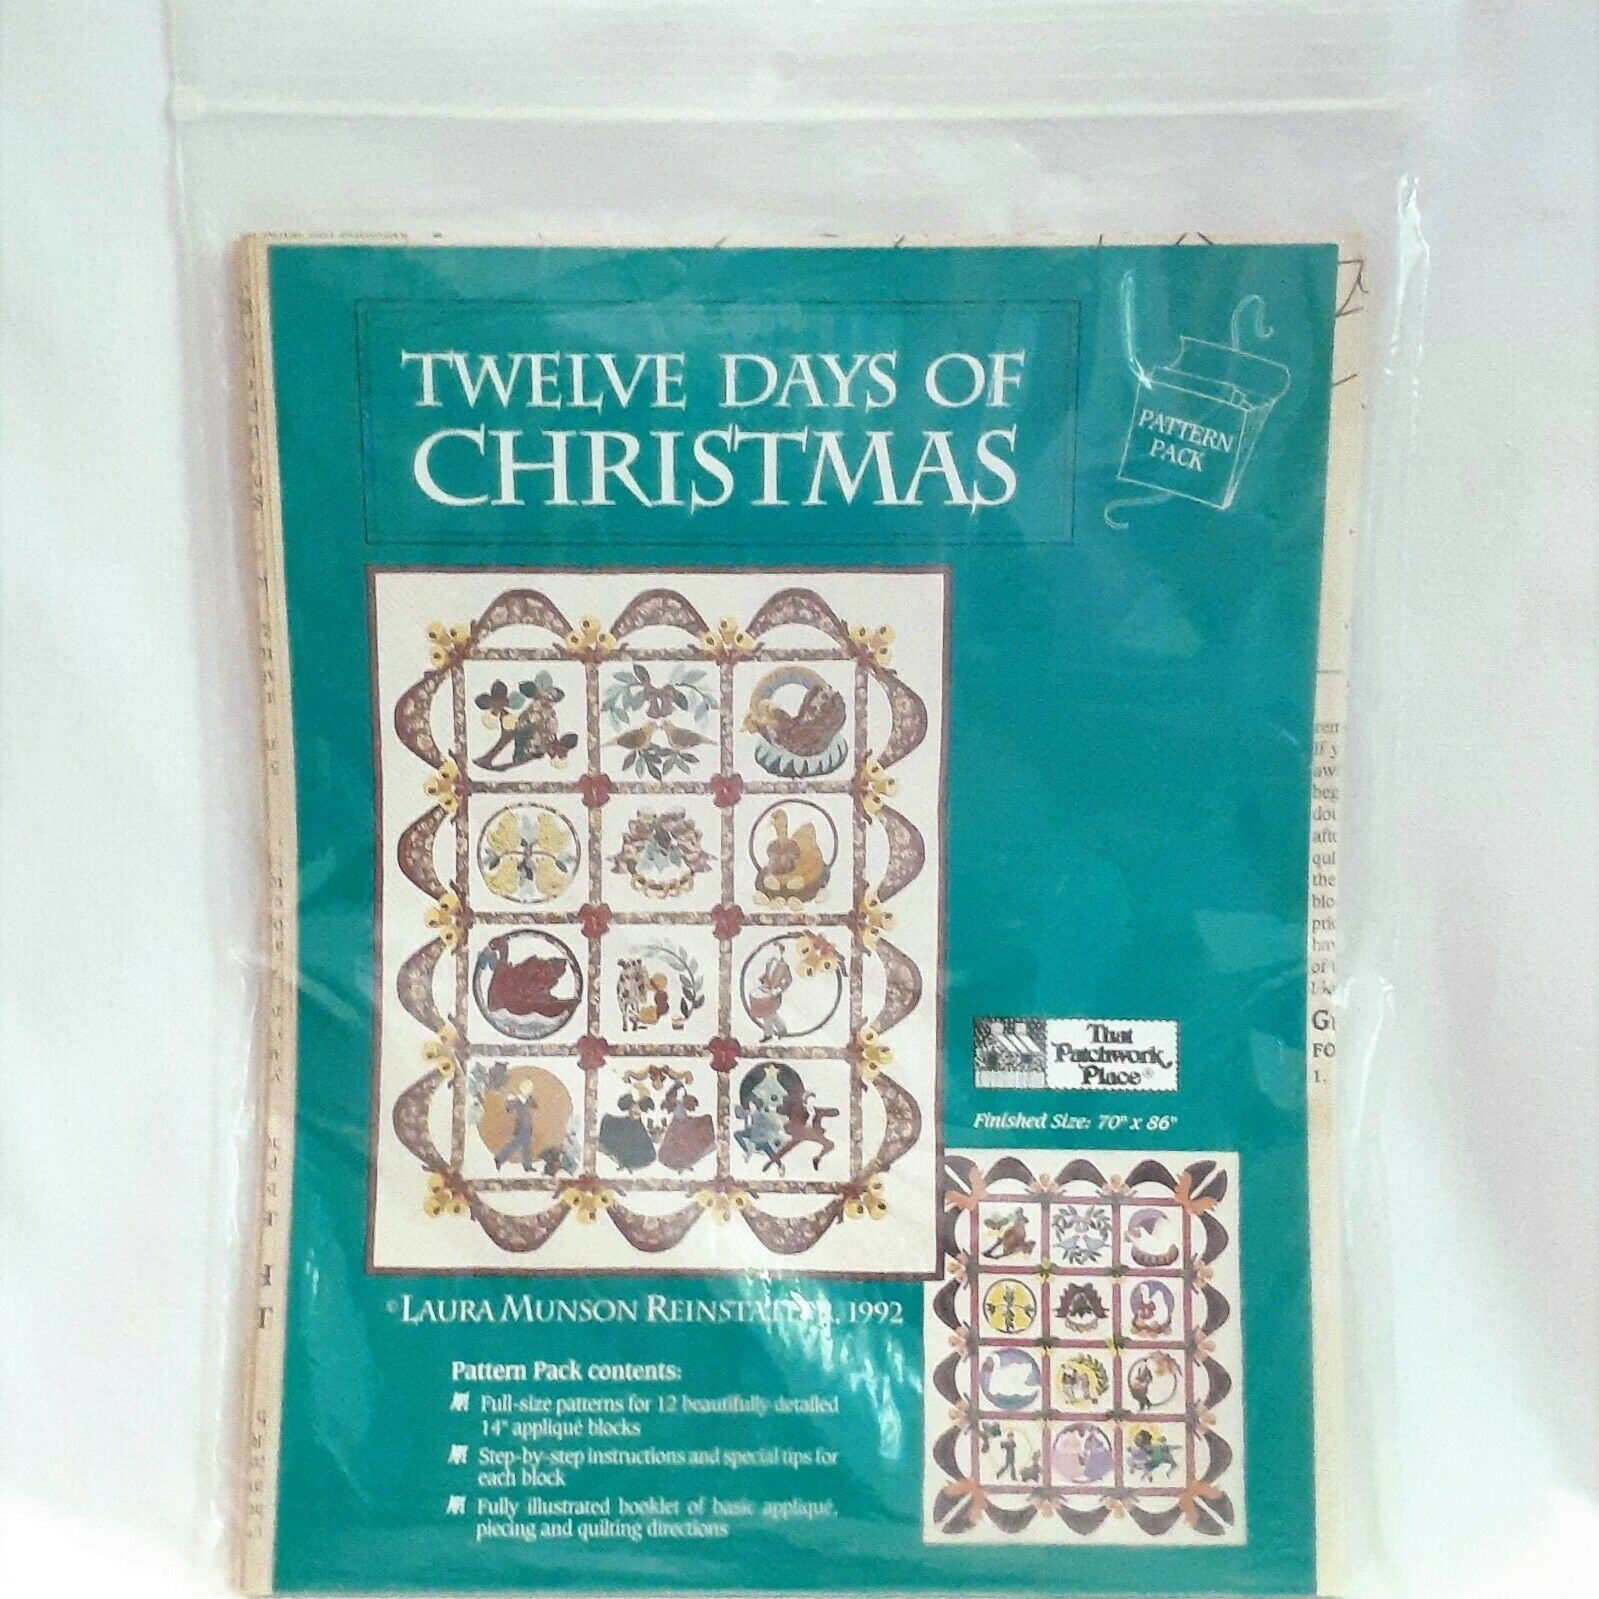 Twelve Days of Christmas Quilt Pattern Pack That Patchwork Place 70x86in 1992 - $21.29